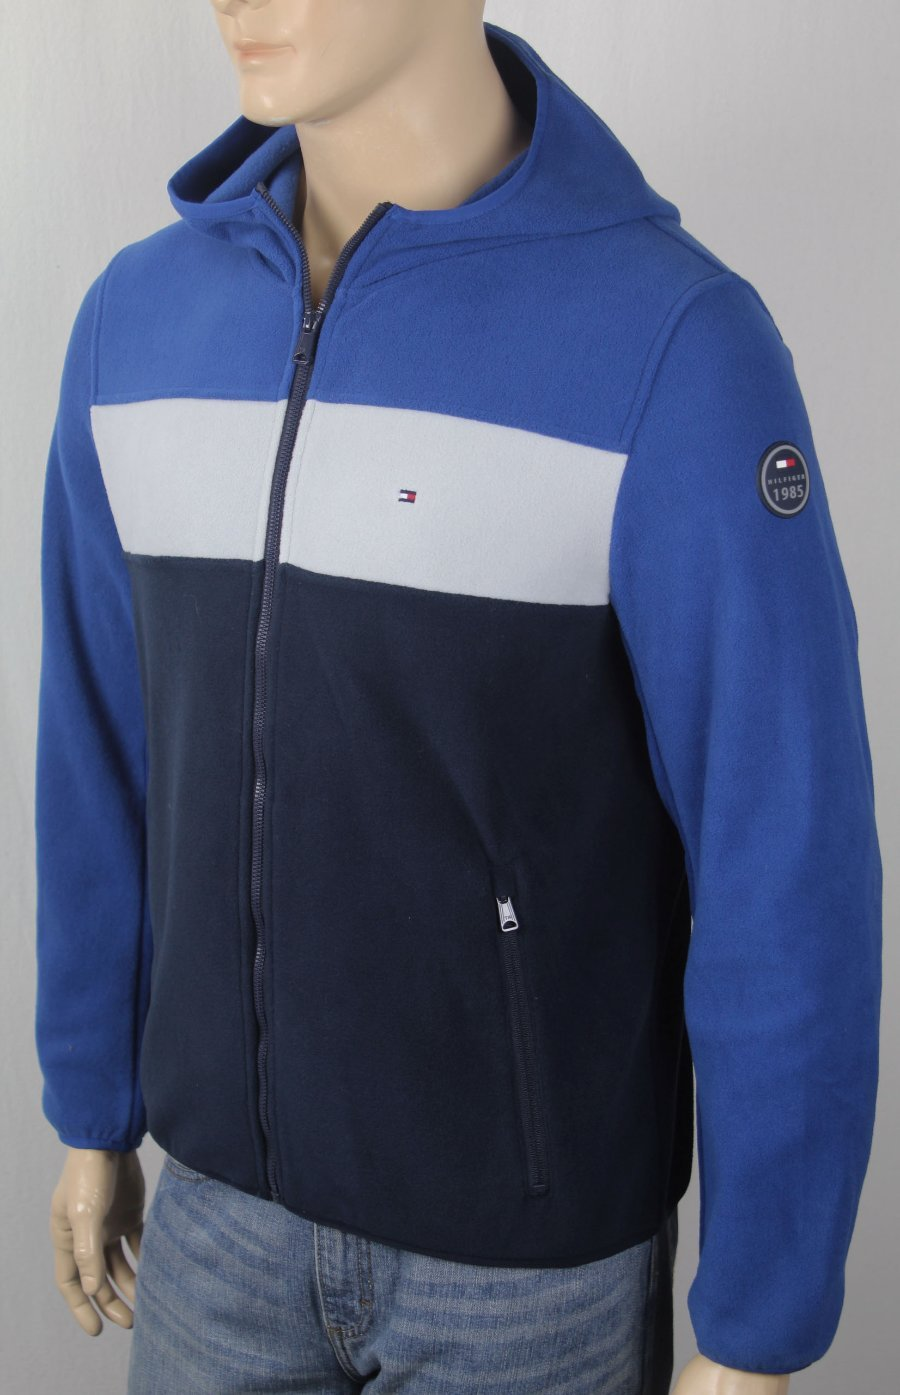 13f9048d17e451 Details about Tommy Hilfiger Blue White Navy Fleece Hoodie Full Zip Jacket  NWT  160